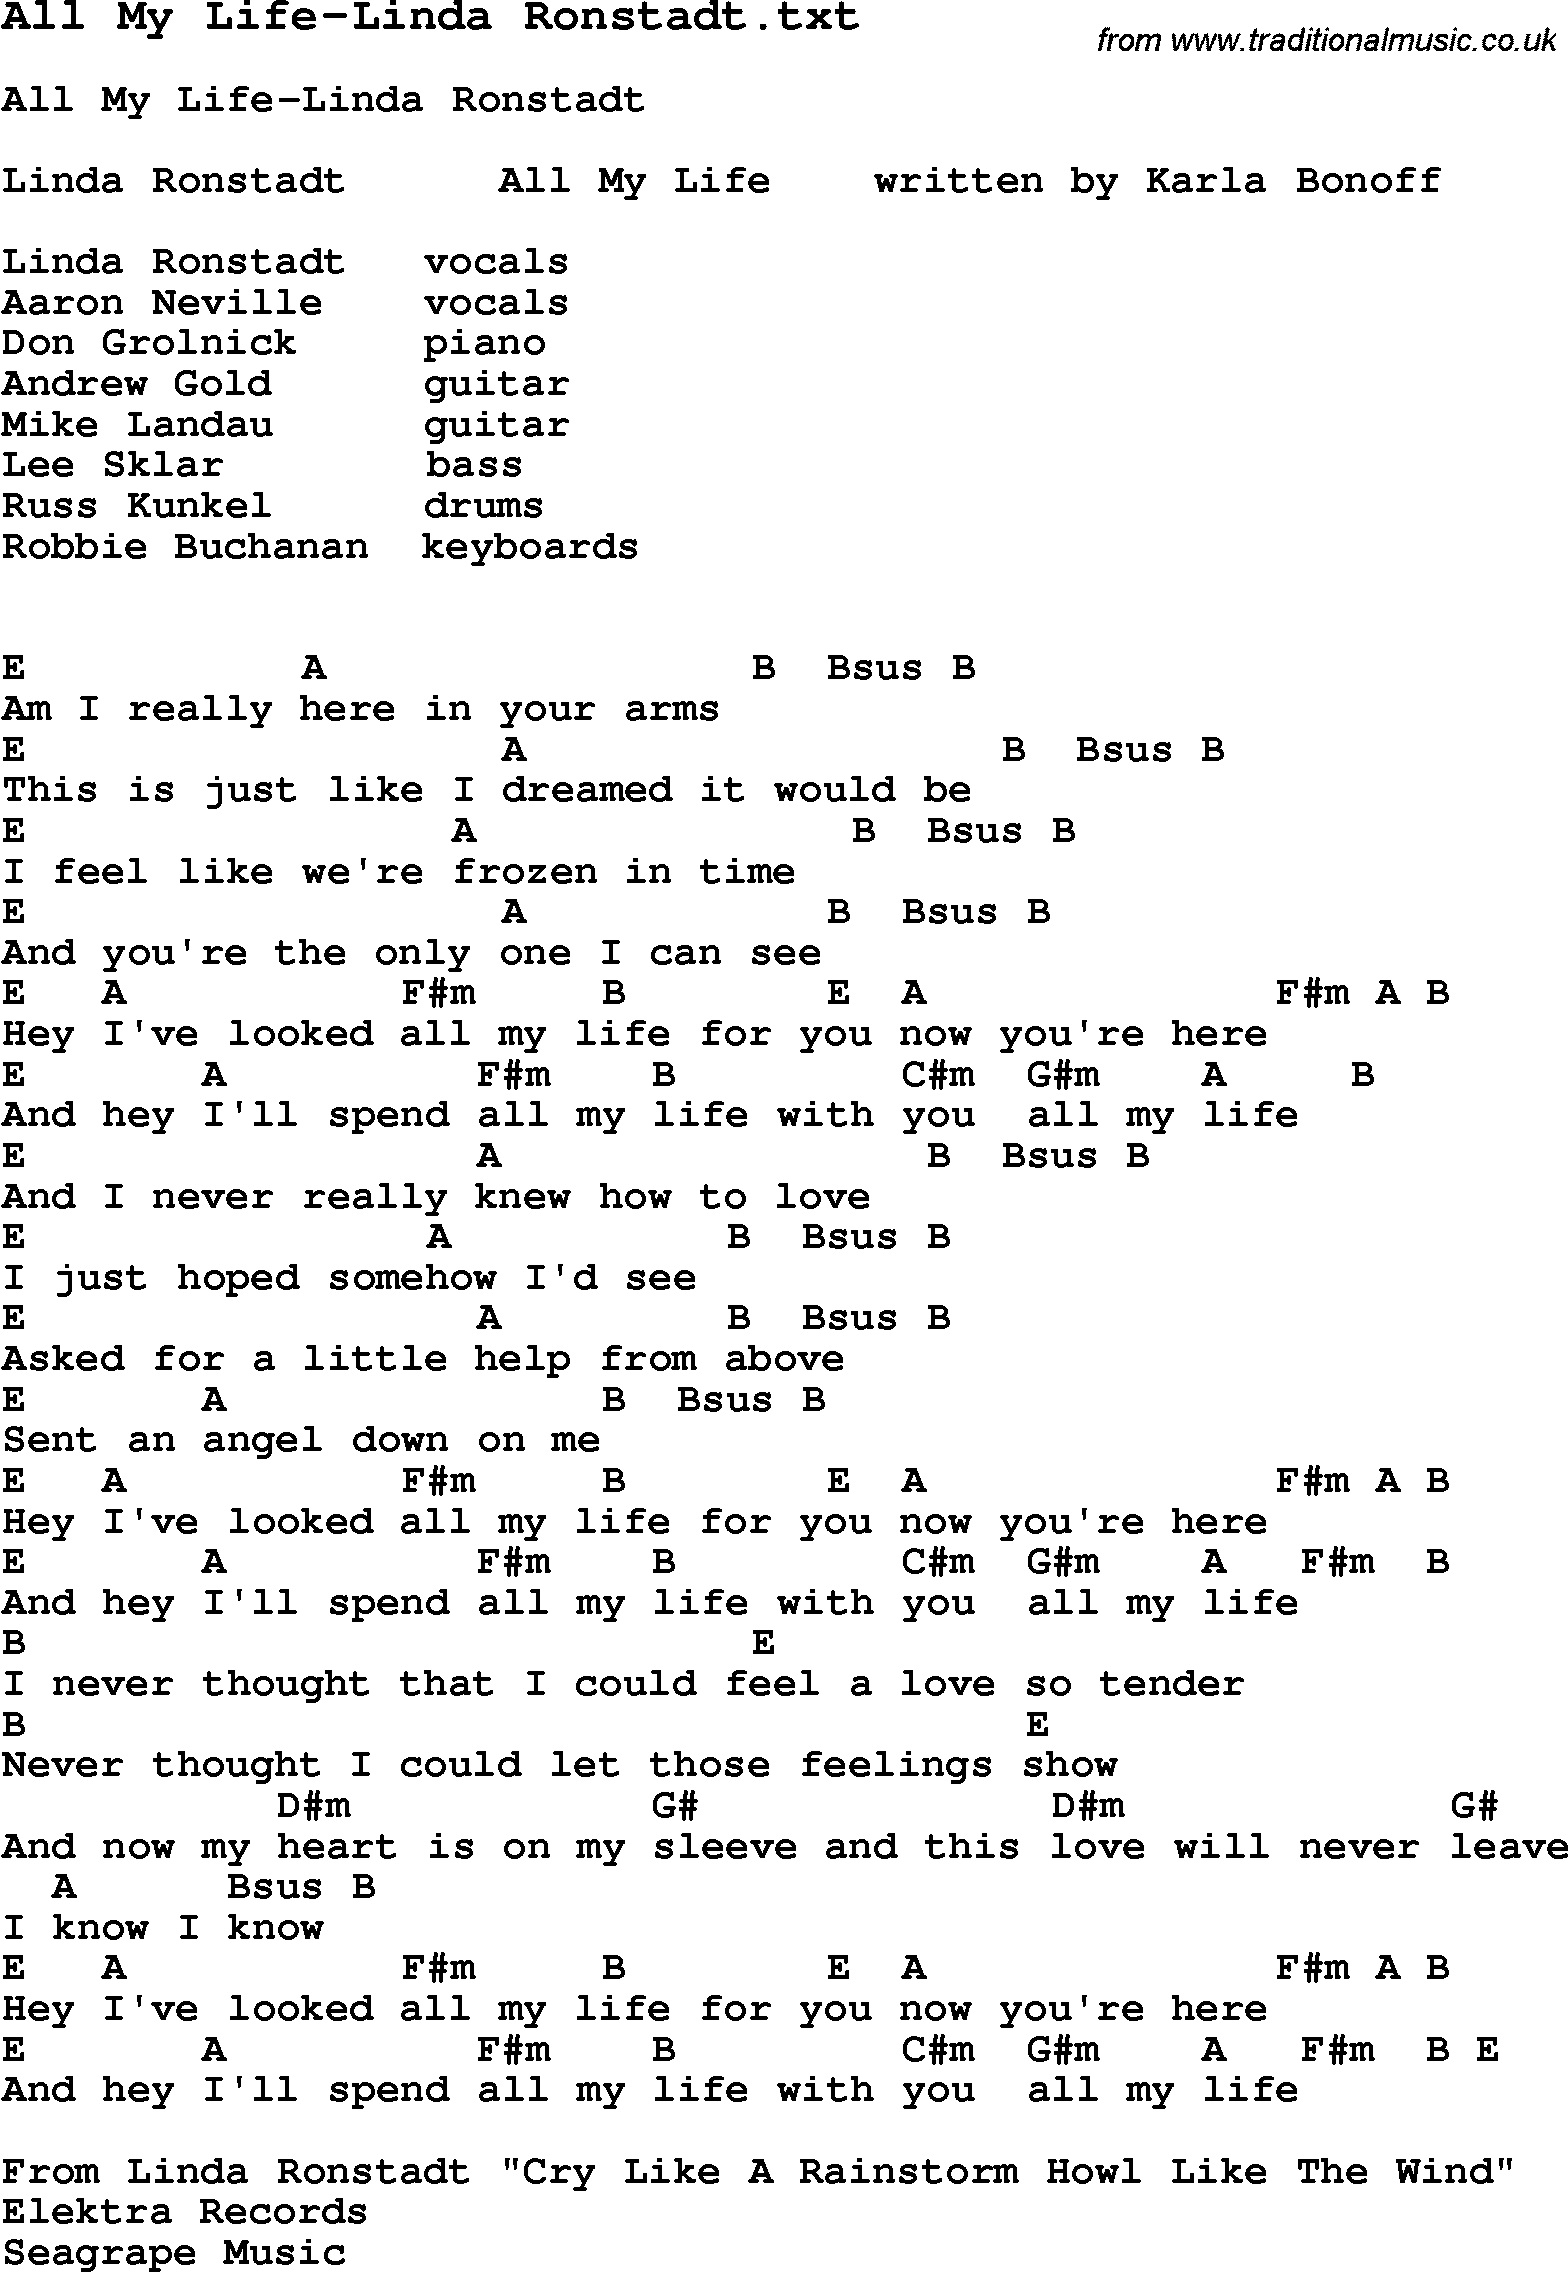 Jazz song all my life linda ronstadt with chords tabs and jazz song from top bands and vocal artists with chords tabs and lyrics all hexwebz Images